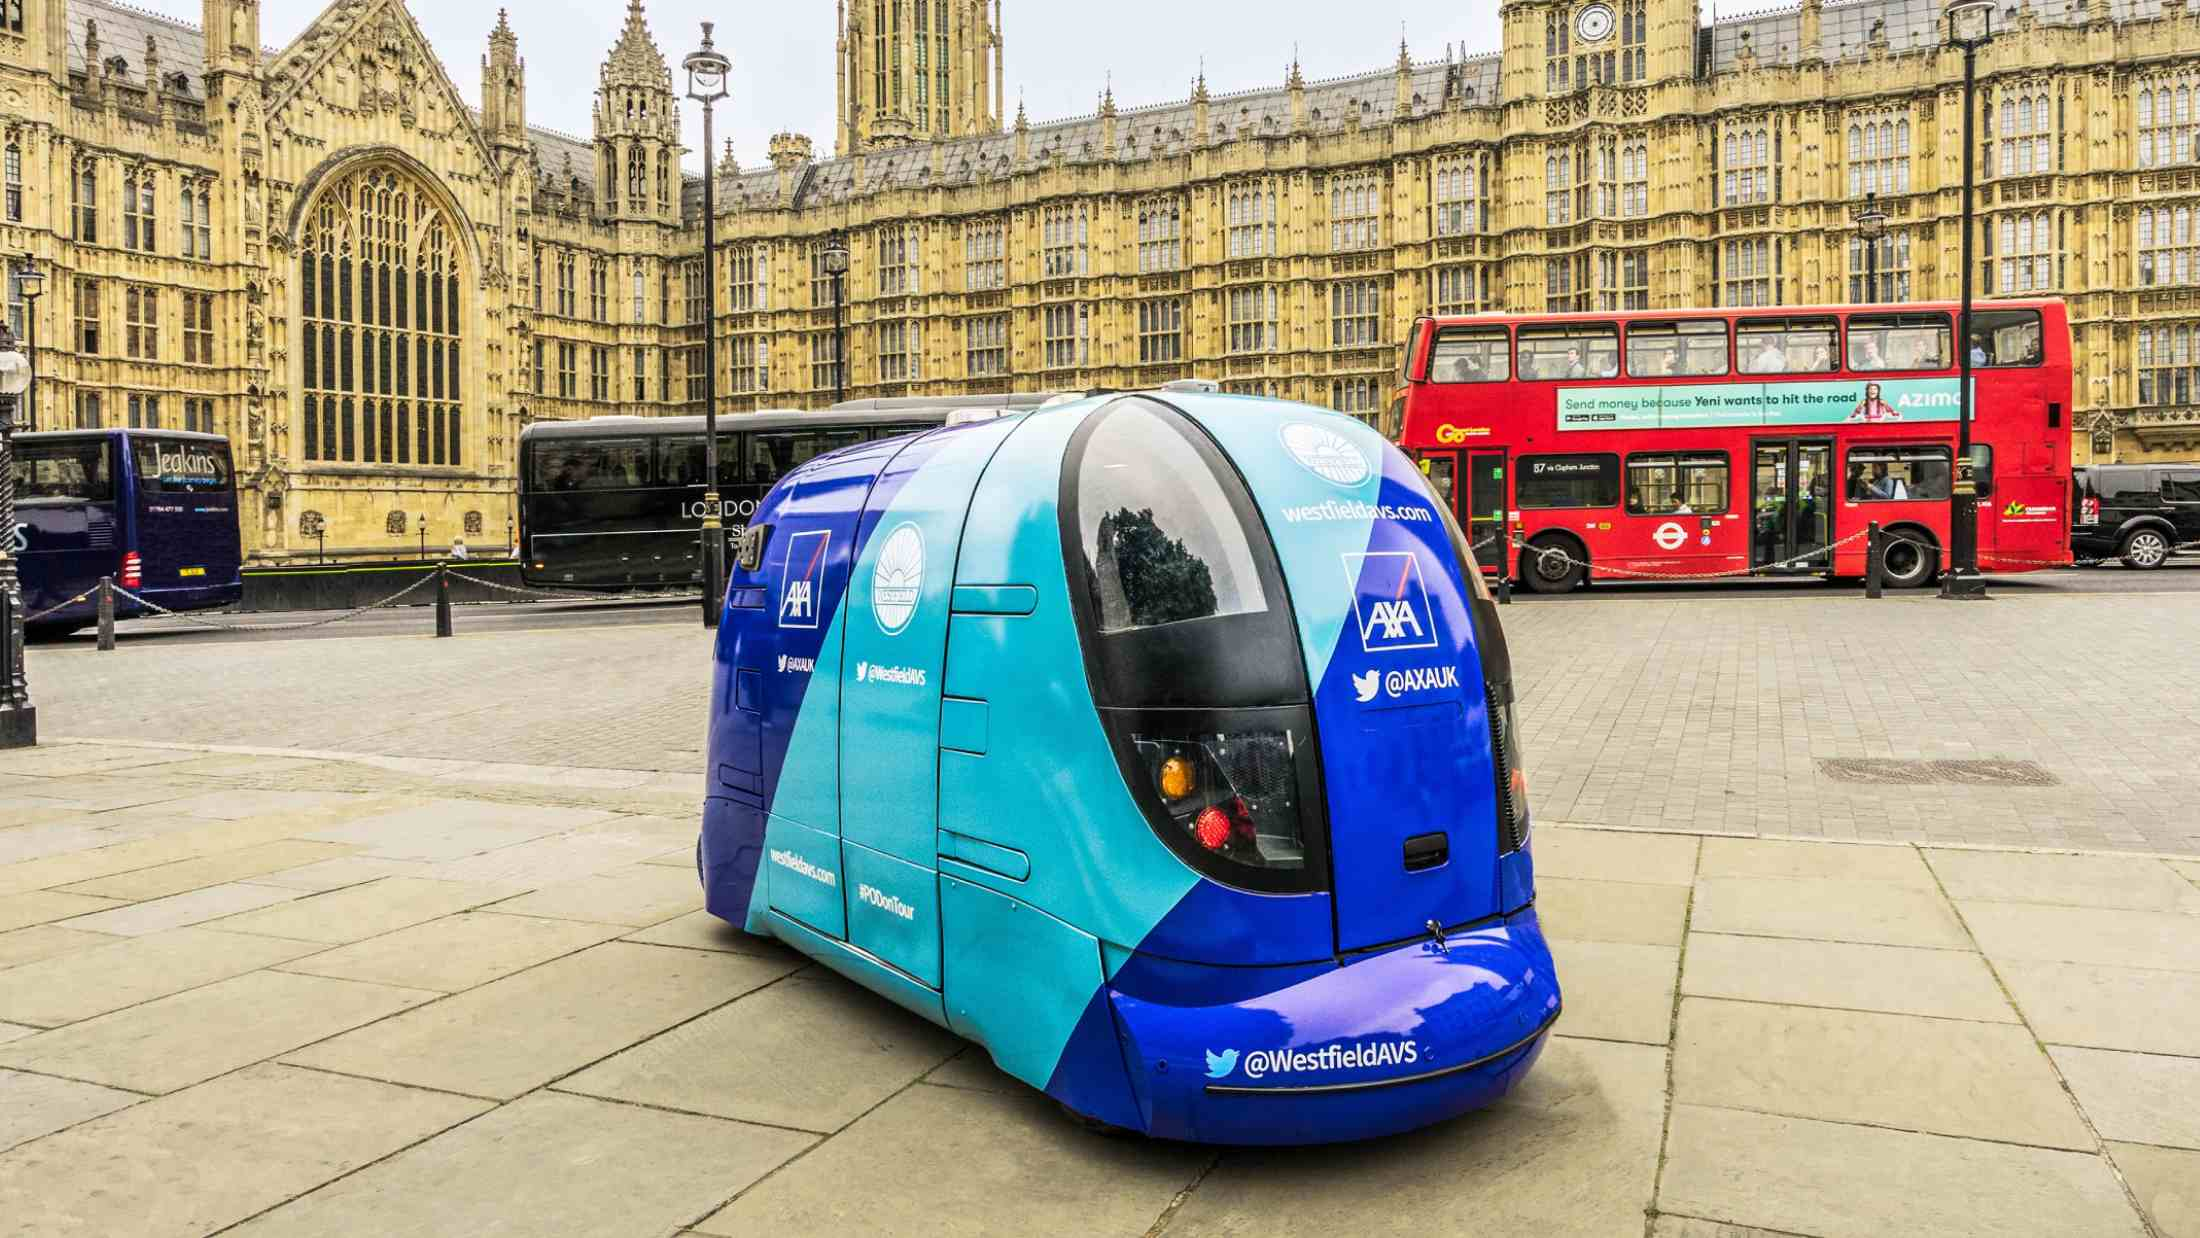 Driverless car outside Houses of Parliament